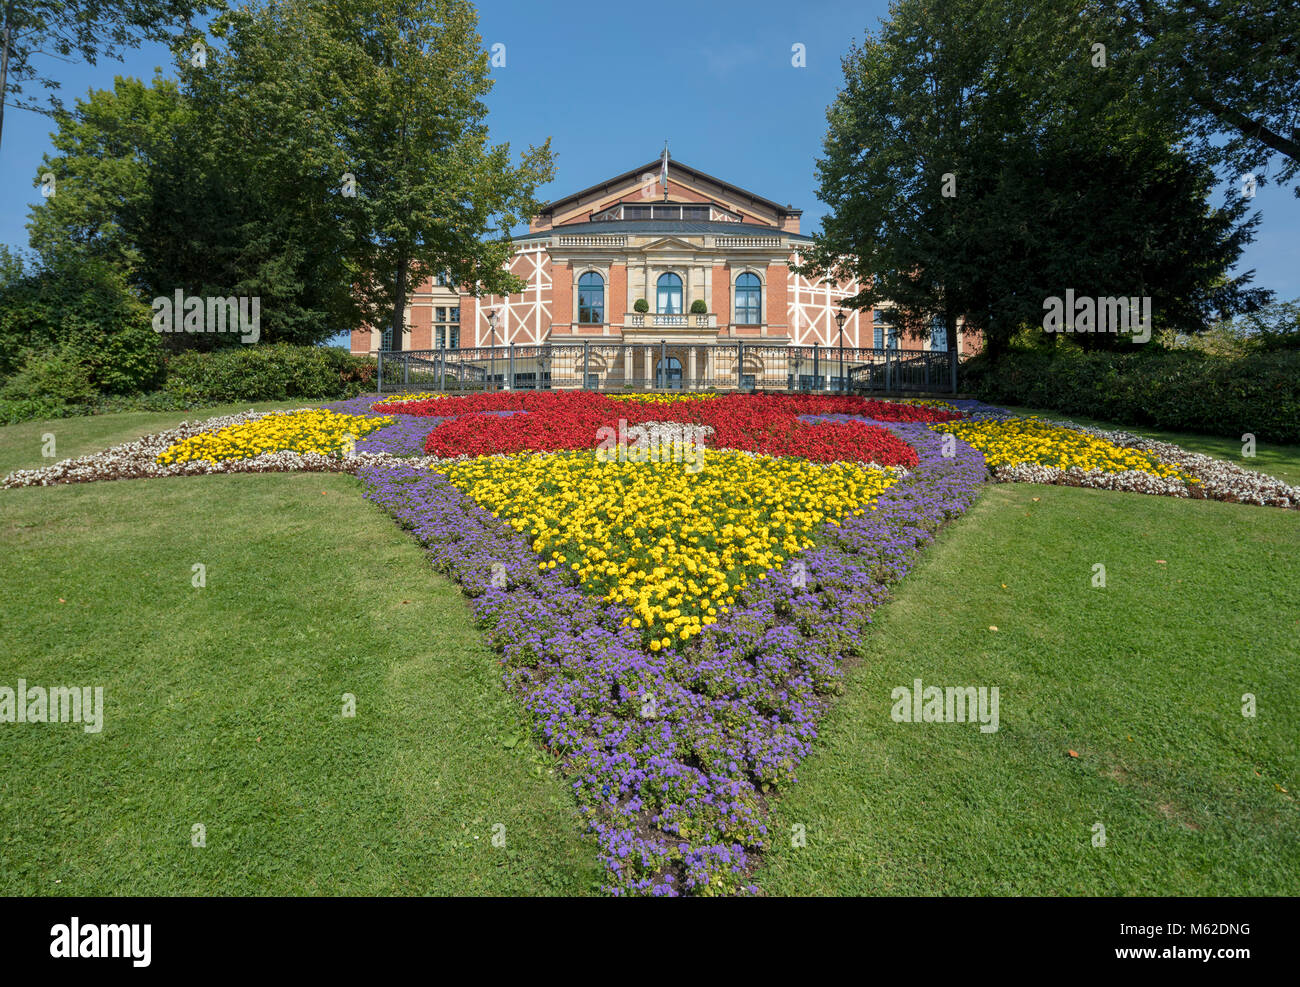 The Bayreuth Festspielhaus or Bayreuth Festival Theatre opera house, Franconia, Bavaria, Germany - Stock Image